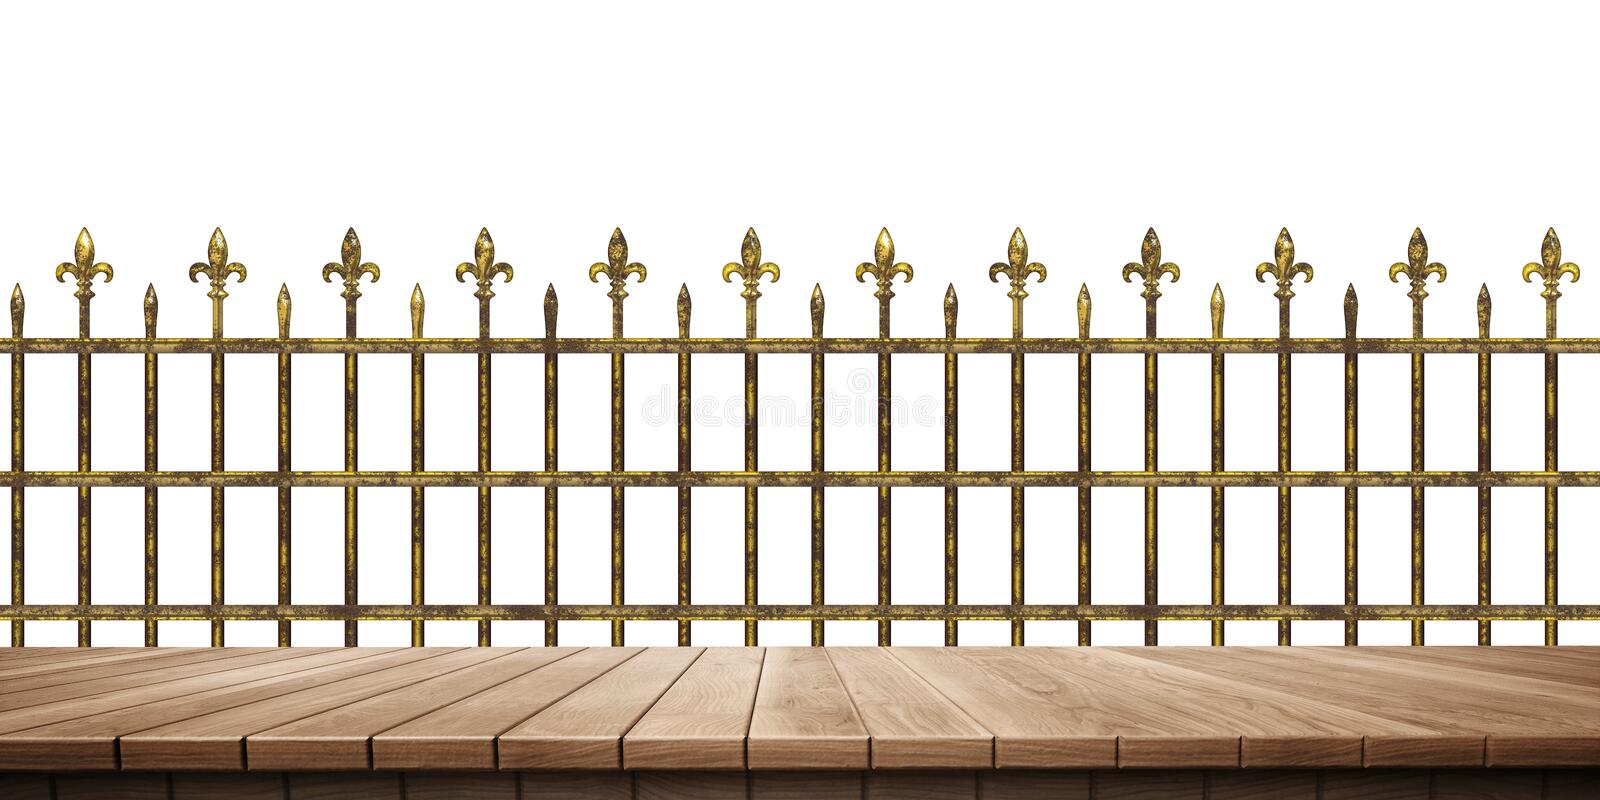 Closeup of colorful wooden platform and fence/railing background, front view. High-resolution 3D CG rendering illustration vector illustration